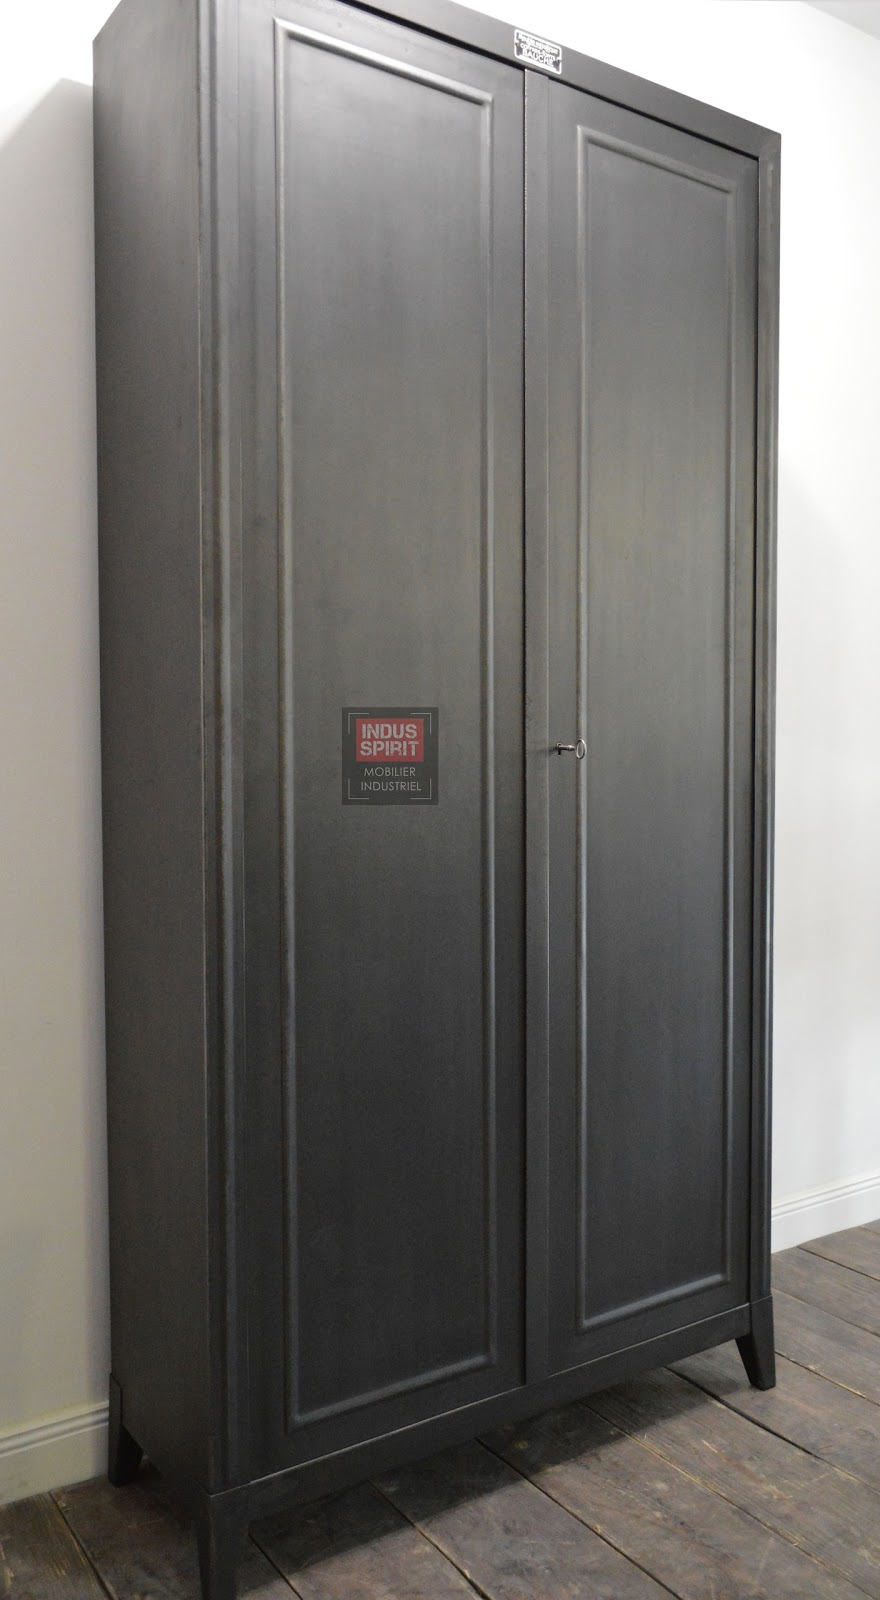 armoire mtallique excellent armoire metallique chambre ado se rapportant armoire metallique. Black Bedroom Furniture Sets. Home Design Ideas